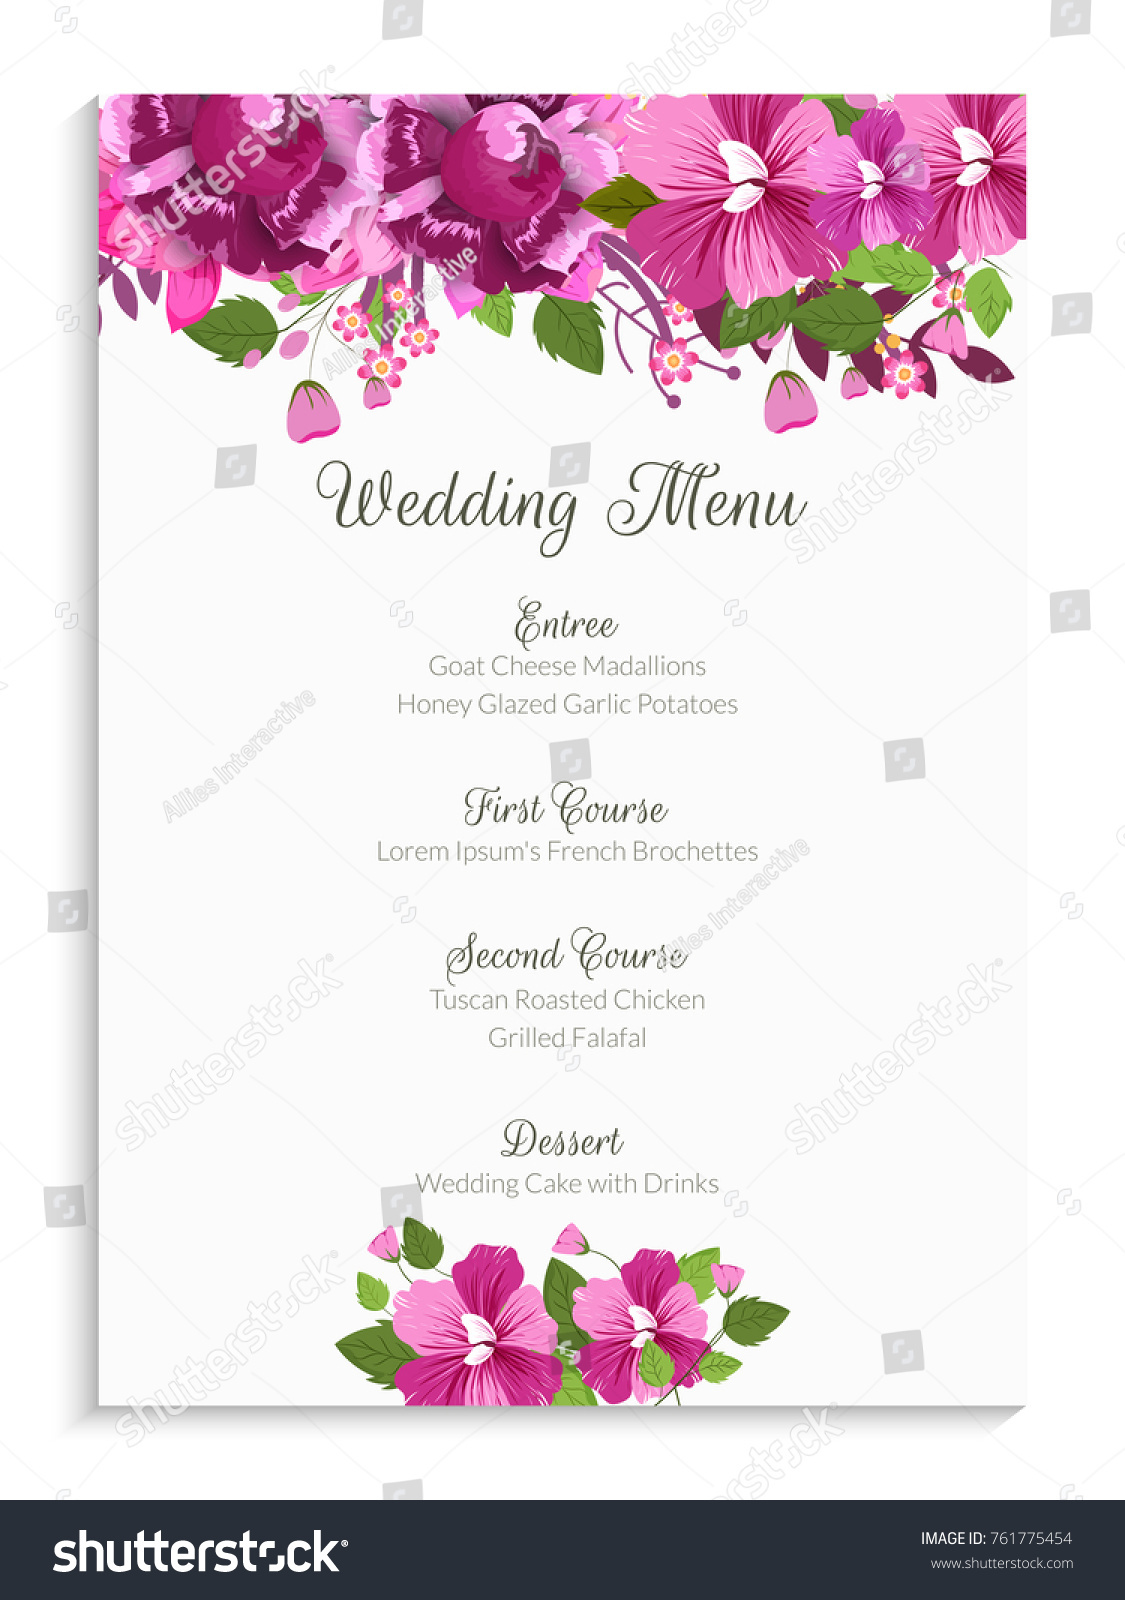 Wedding menu card design decorated pink stock vector royalty free wedding menu card design decorated with pink flowers mightylinksfo